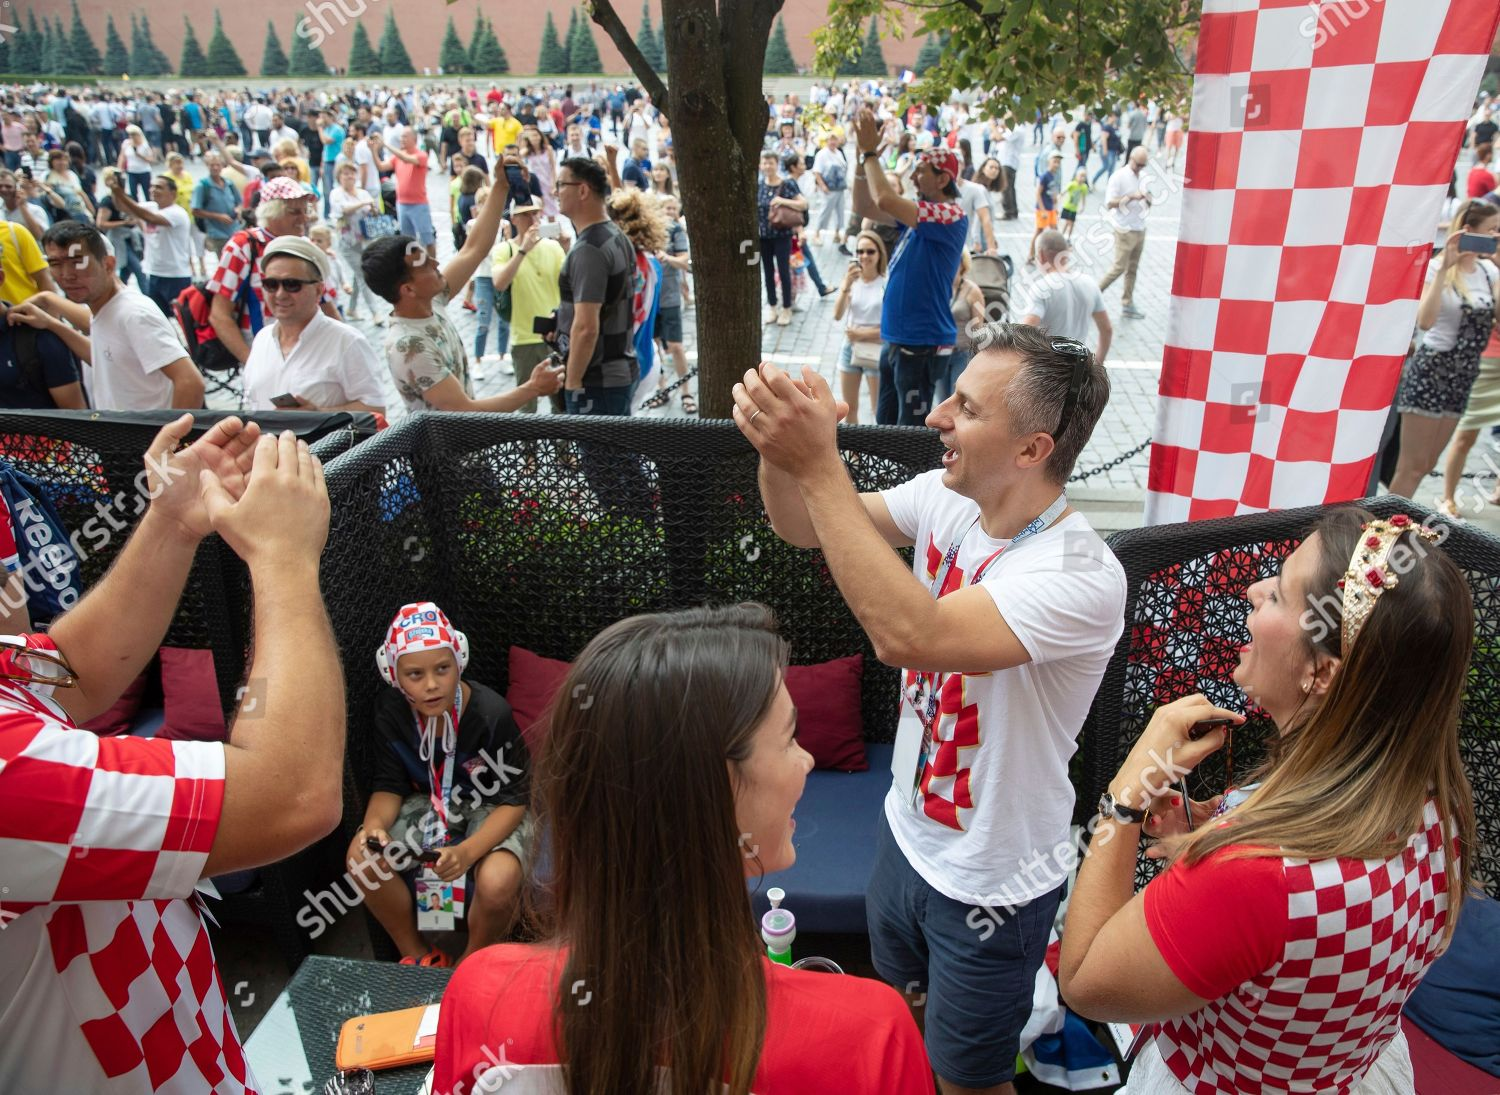 Croatias soccer fans sing songs bar Red Editorial Stock Photo